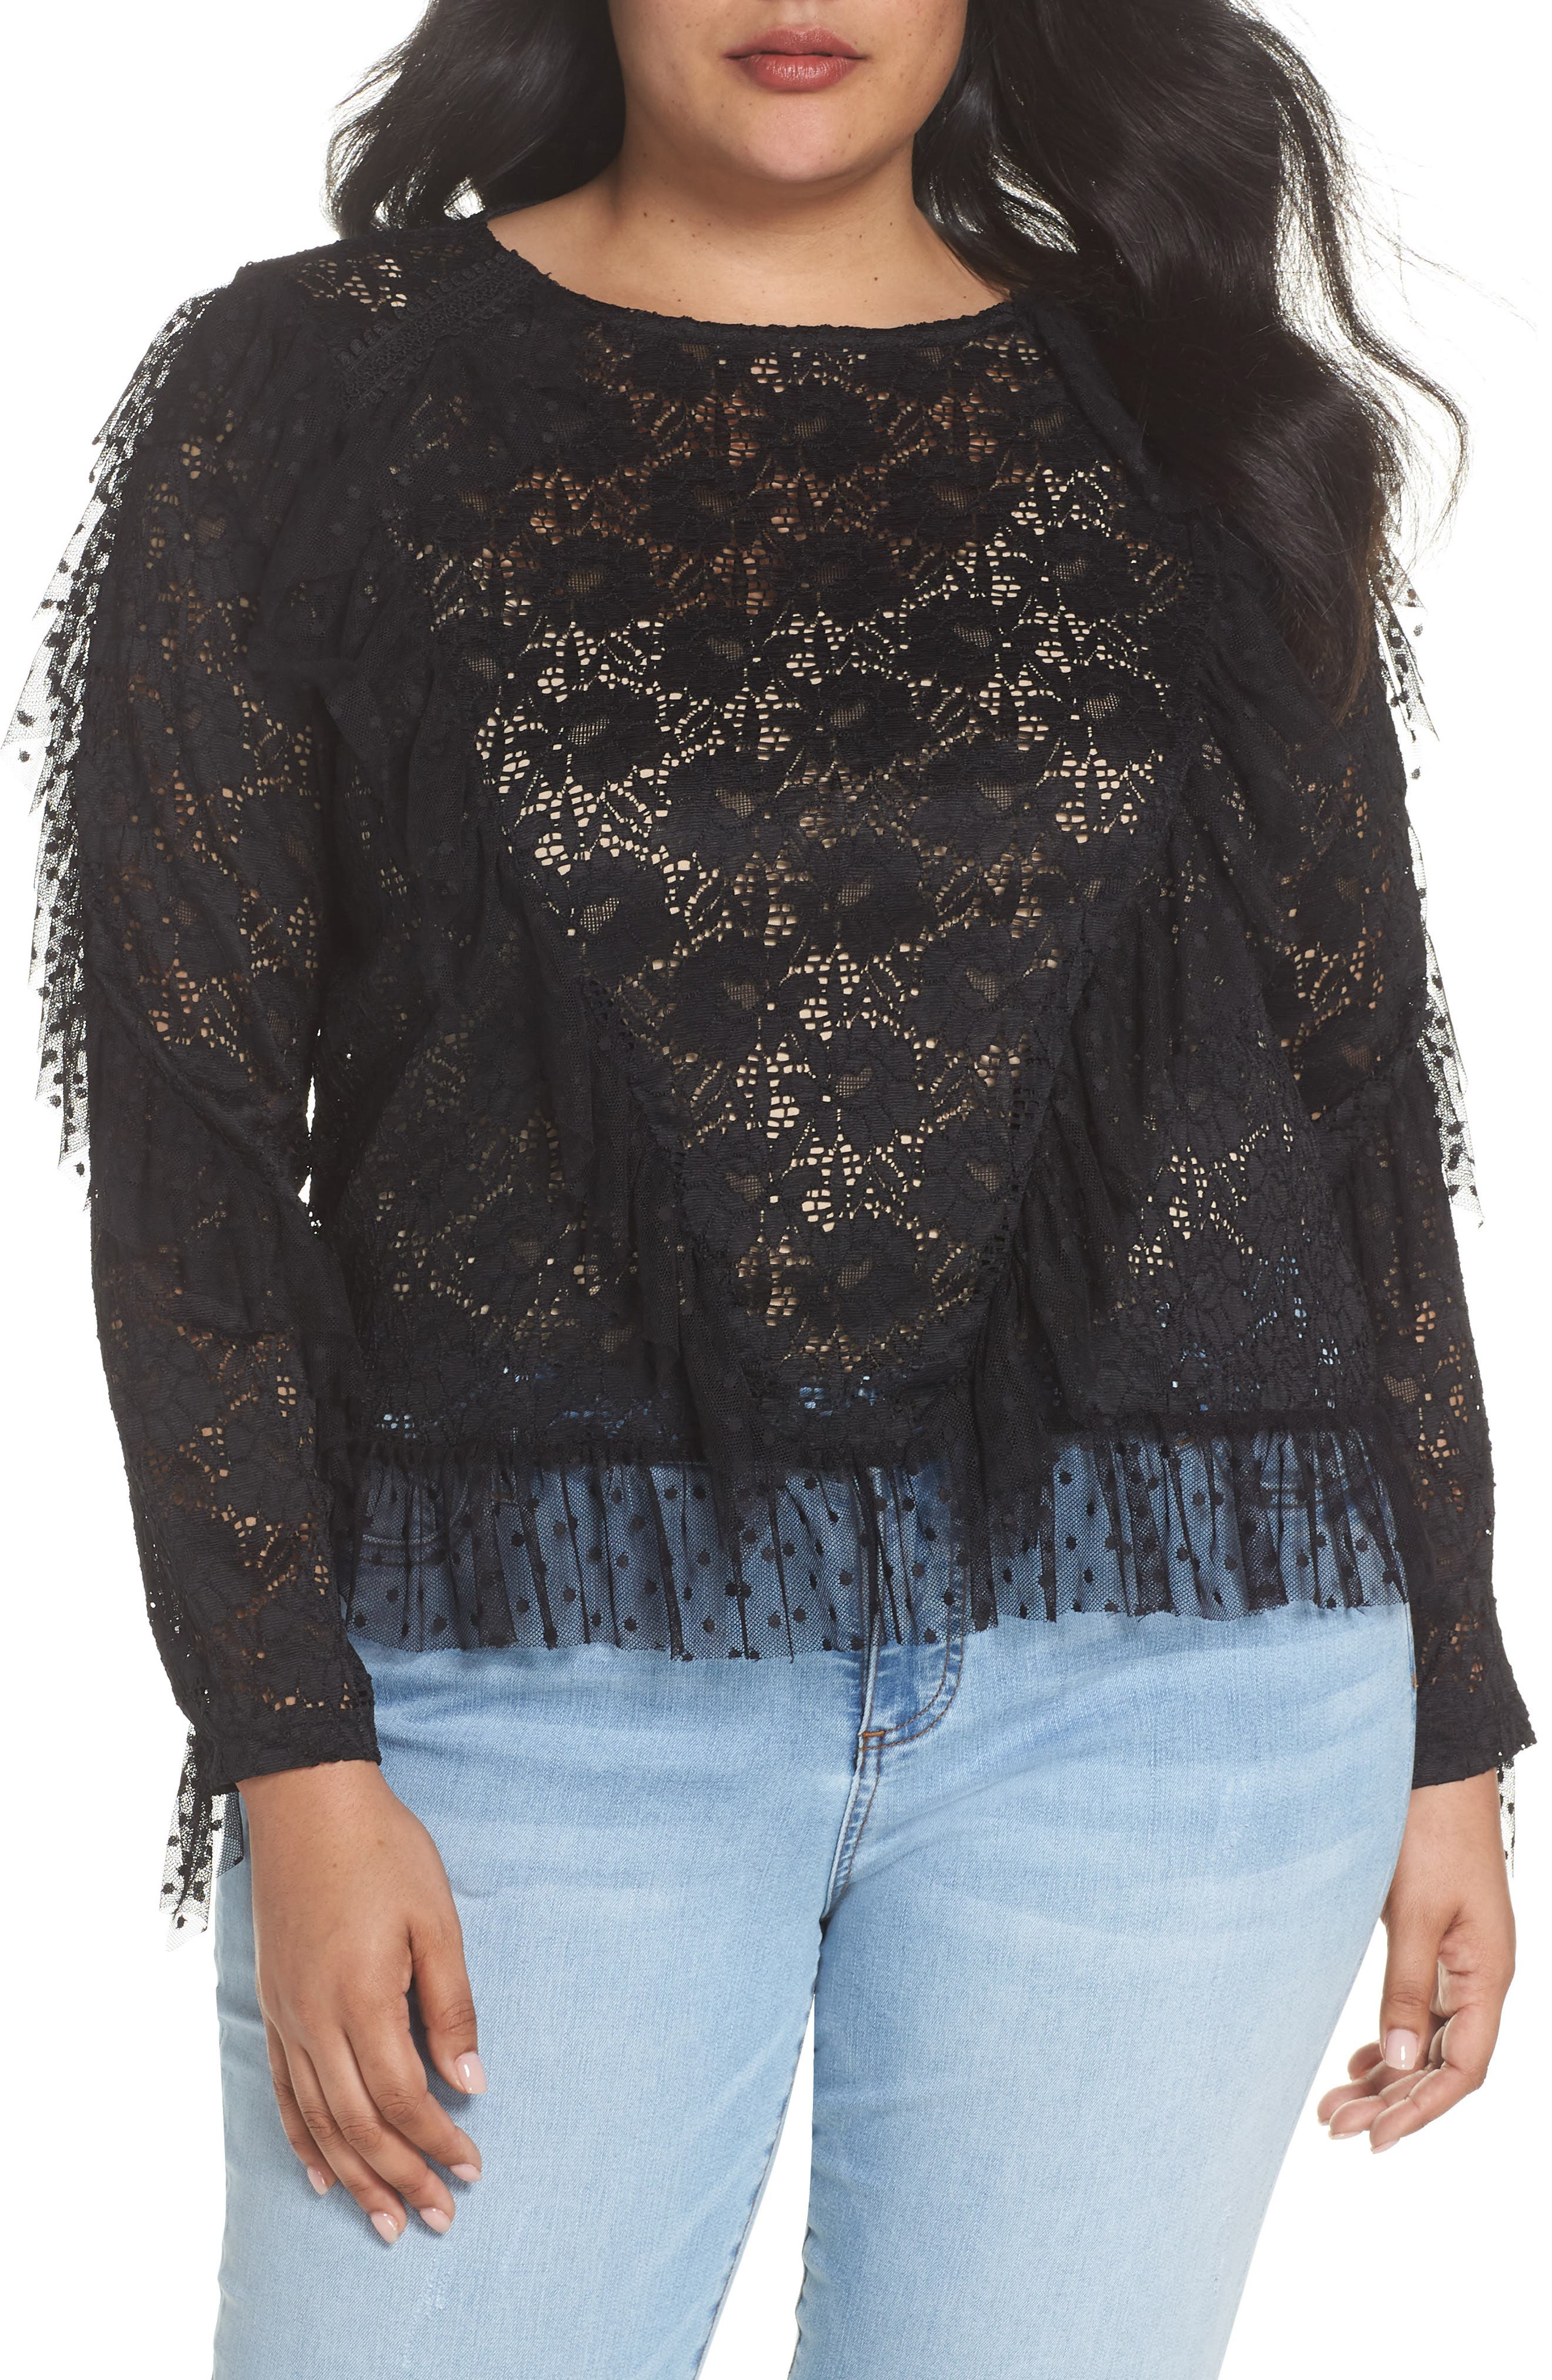 LOST INK Ruffle Trim Lace Top, Main, color, 001